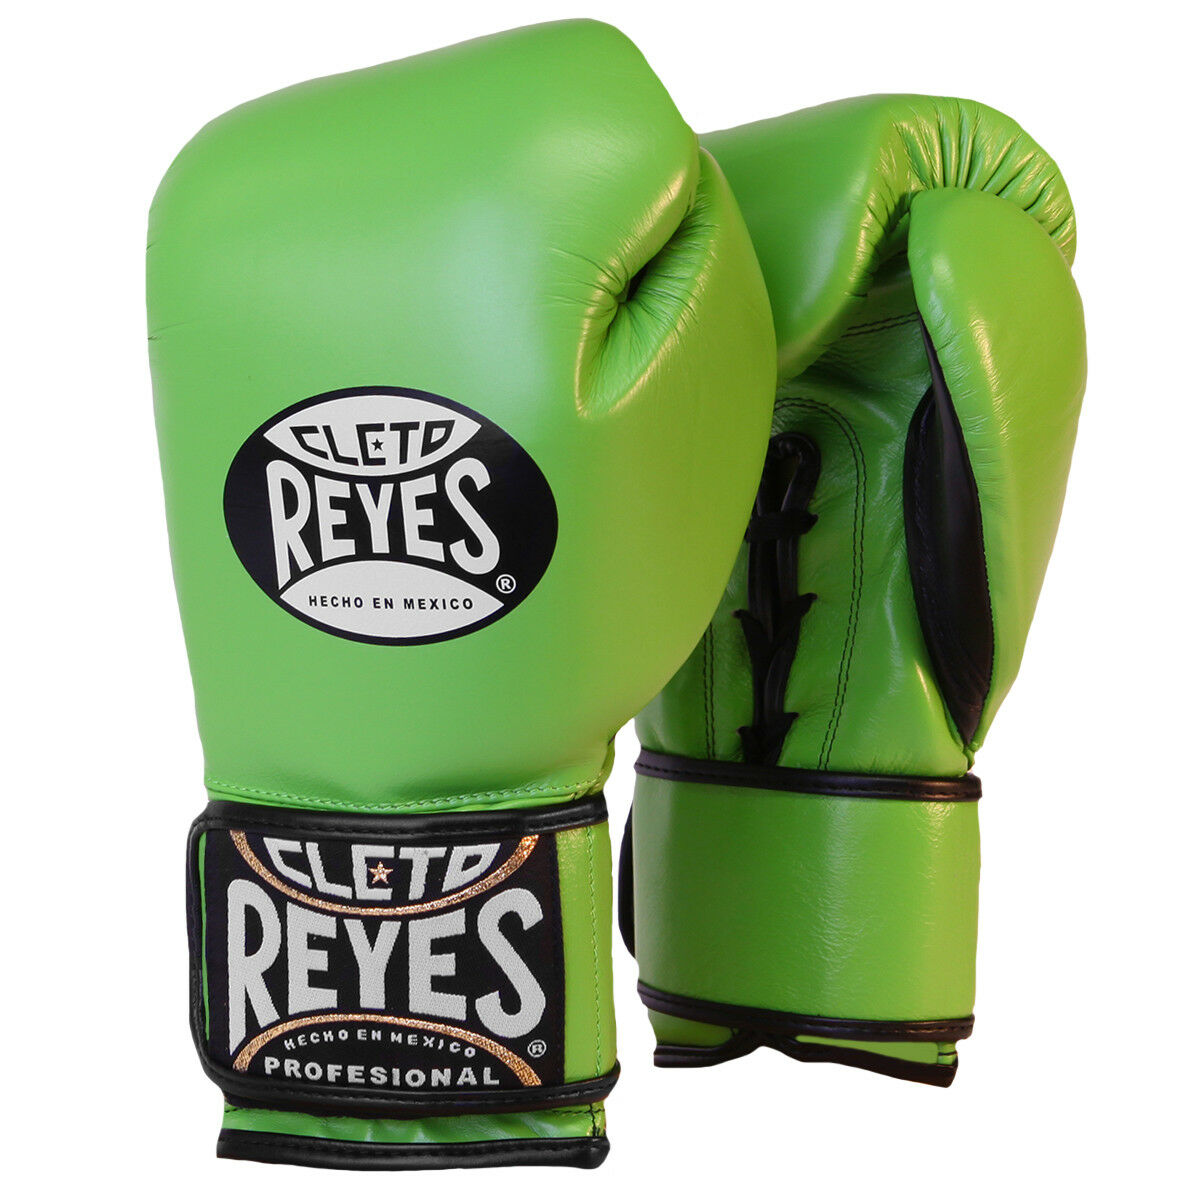 Cleto Reyes  Lace Up Hook and Loop Hybrid Boxing G s - Citrus Green  come to choose your own sports style